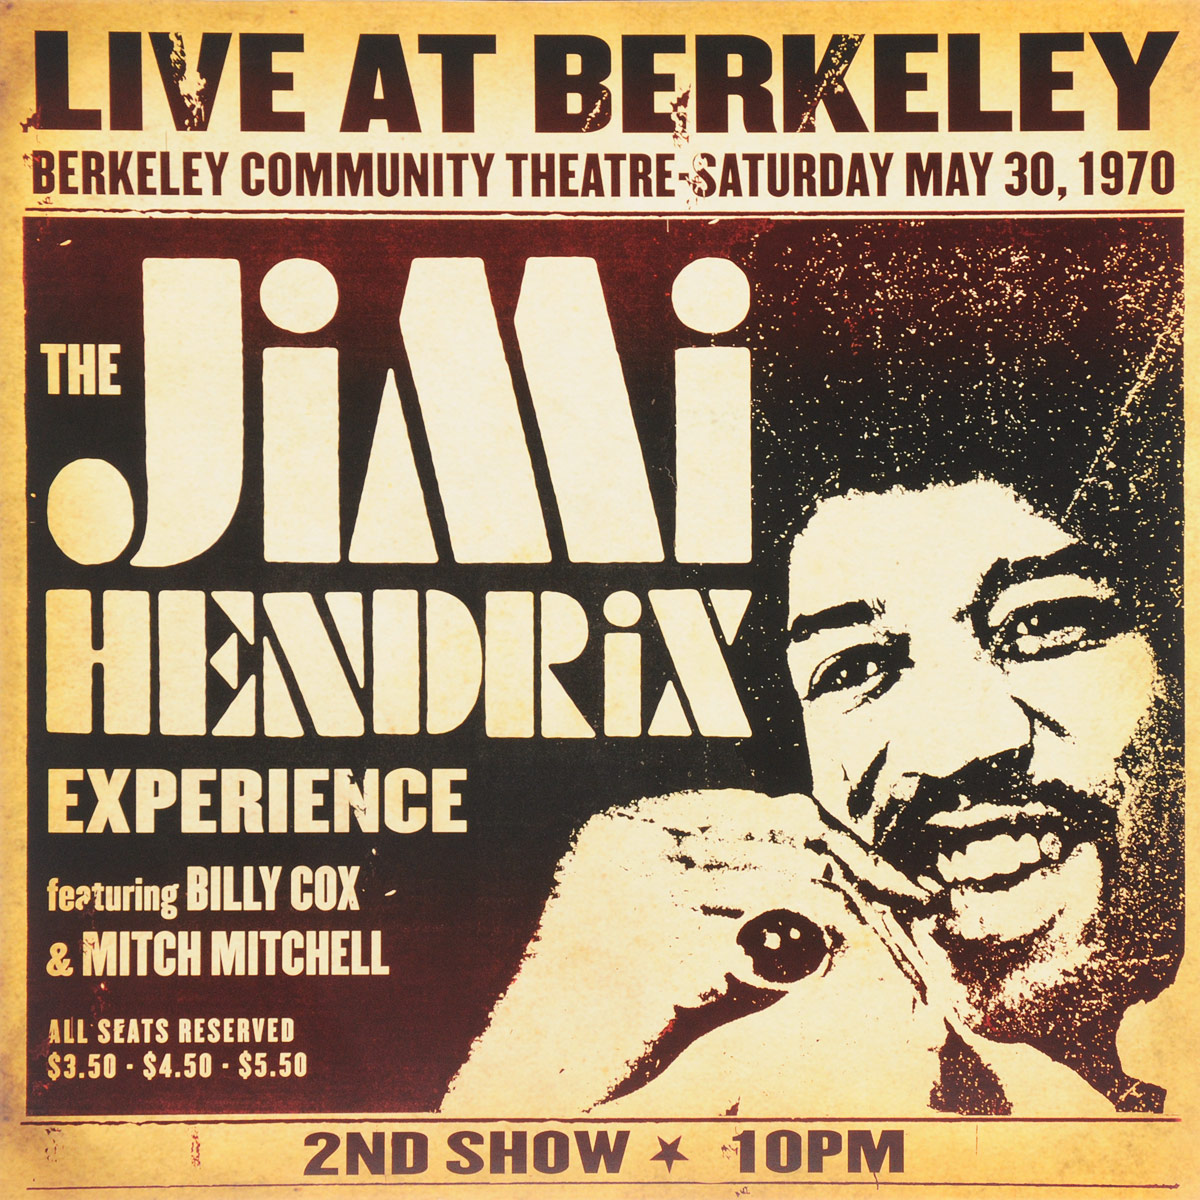 Джими Хендрикс Jimi Hendrix. Live At Berkeley (Experience) (2 LP) джими хендрикс jimi hendrix the cry of love lp